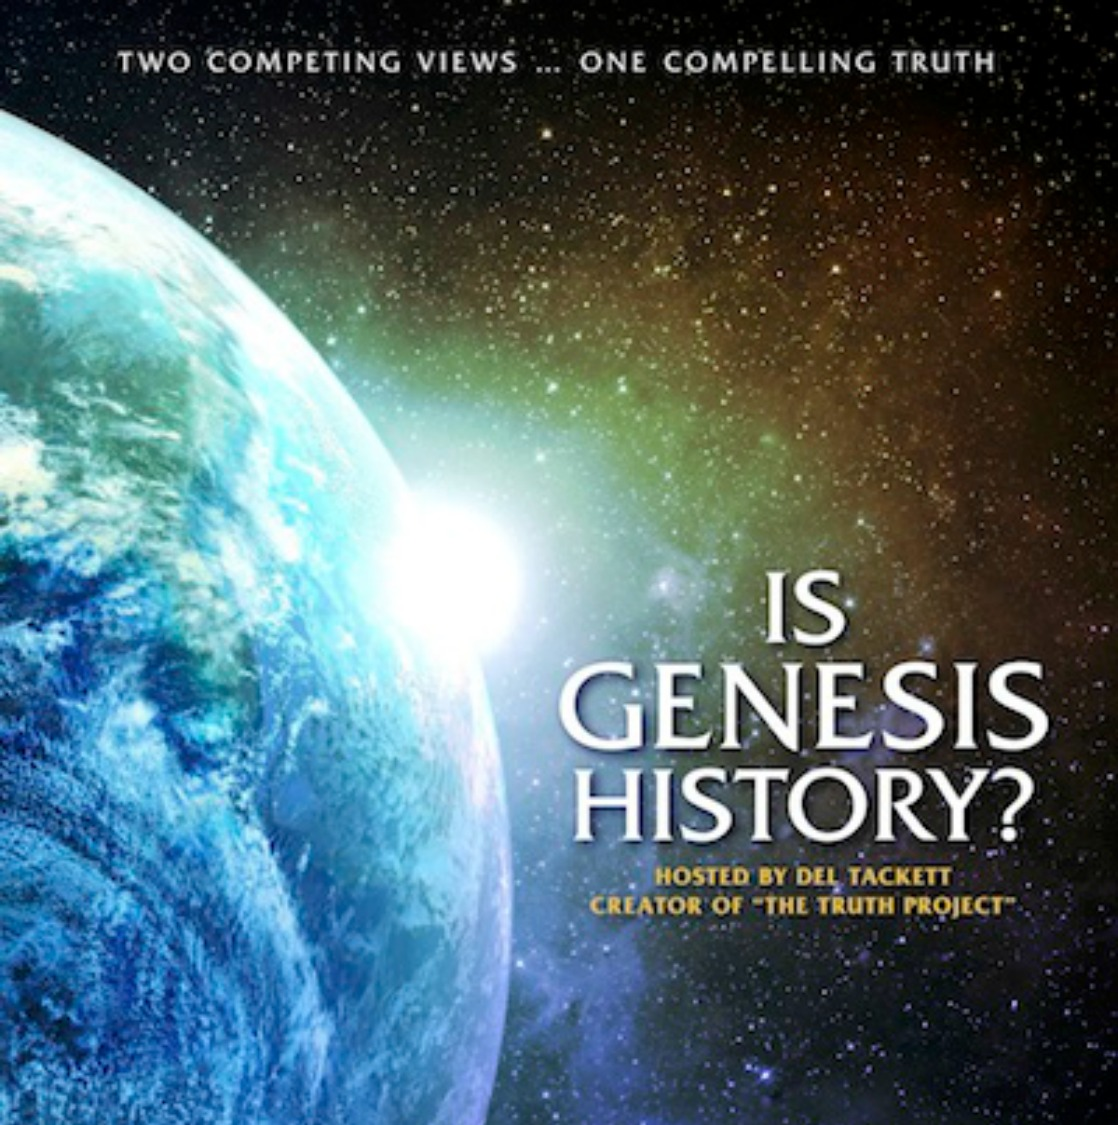 Refreshing Review: Is Genesis History? documentary